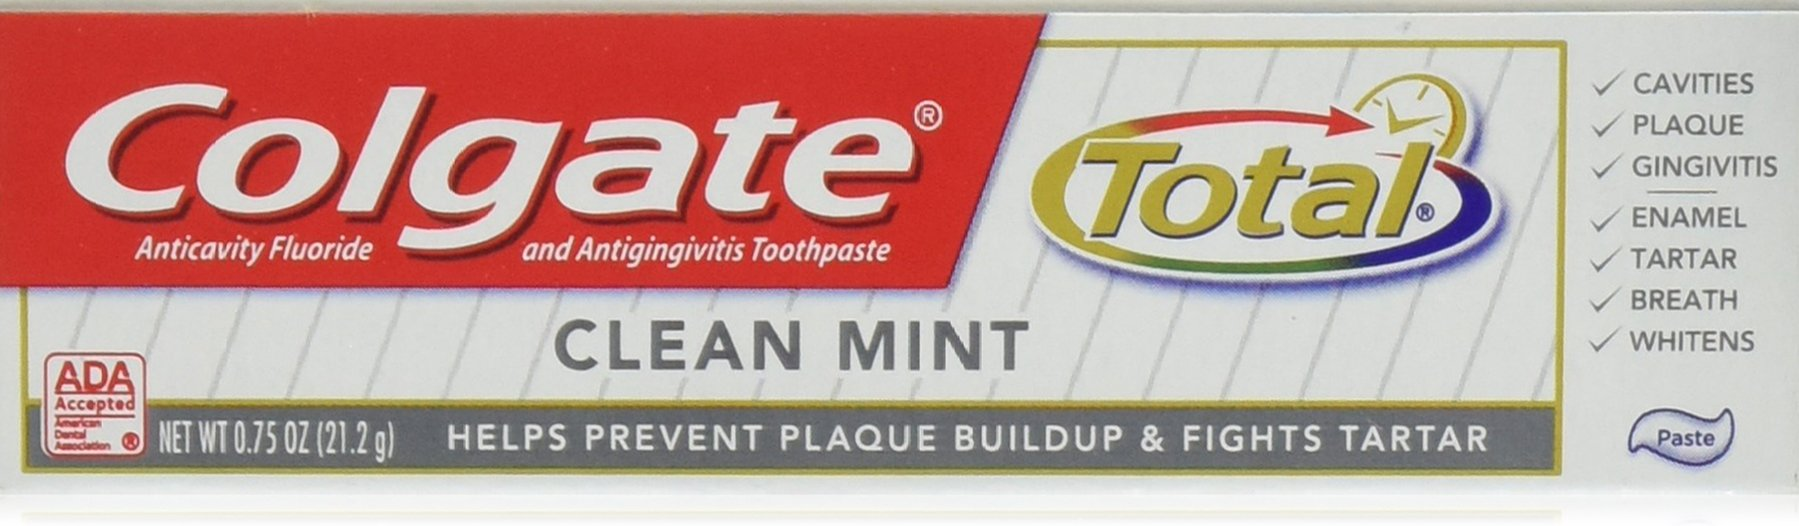 Colgate Total Toothpaste, Anticavity Fluoride and Antigingivitis, Clean Mint Travel Size, TSA Aproved, 0.75 Oz (12 Pack)